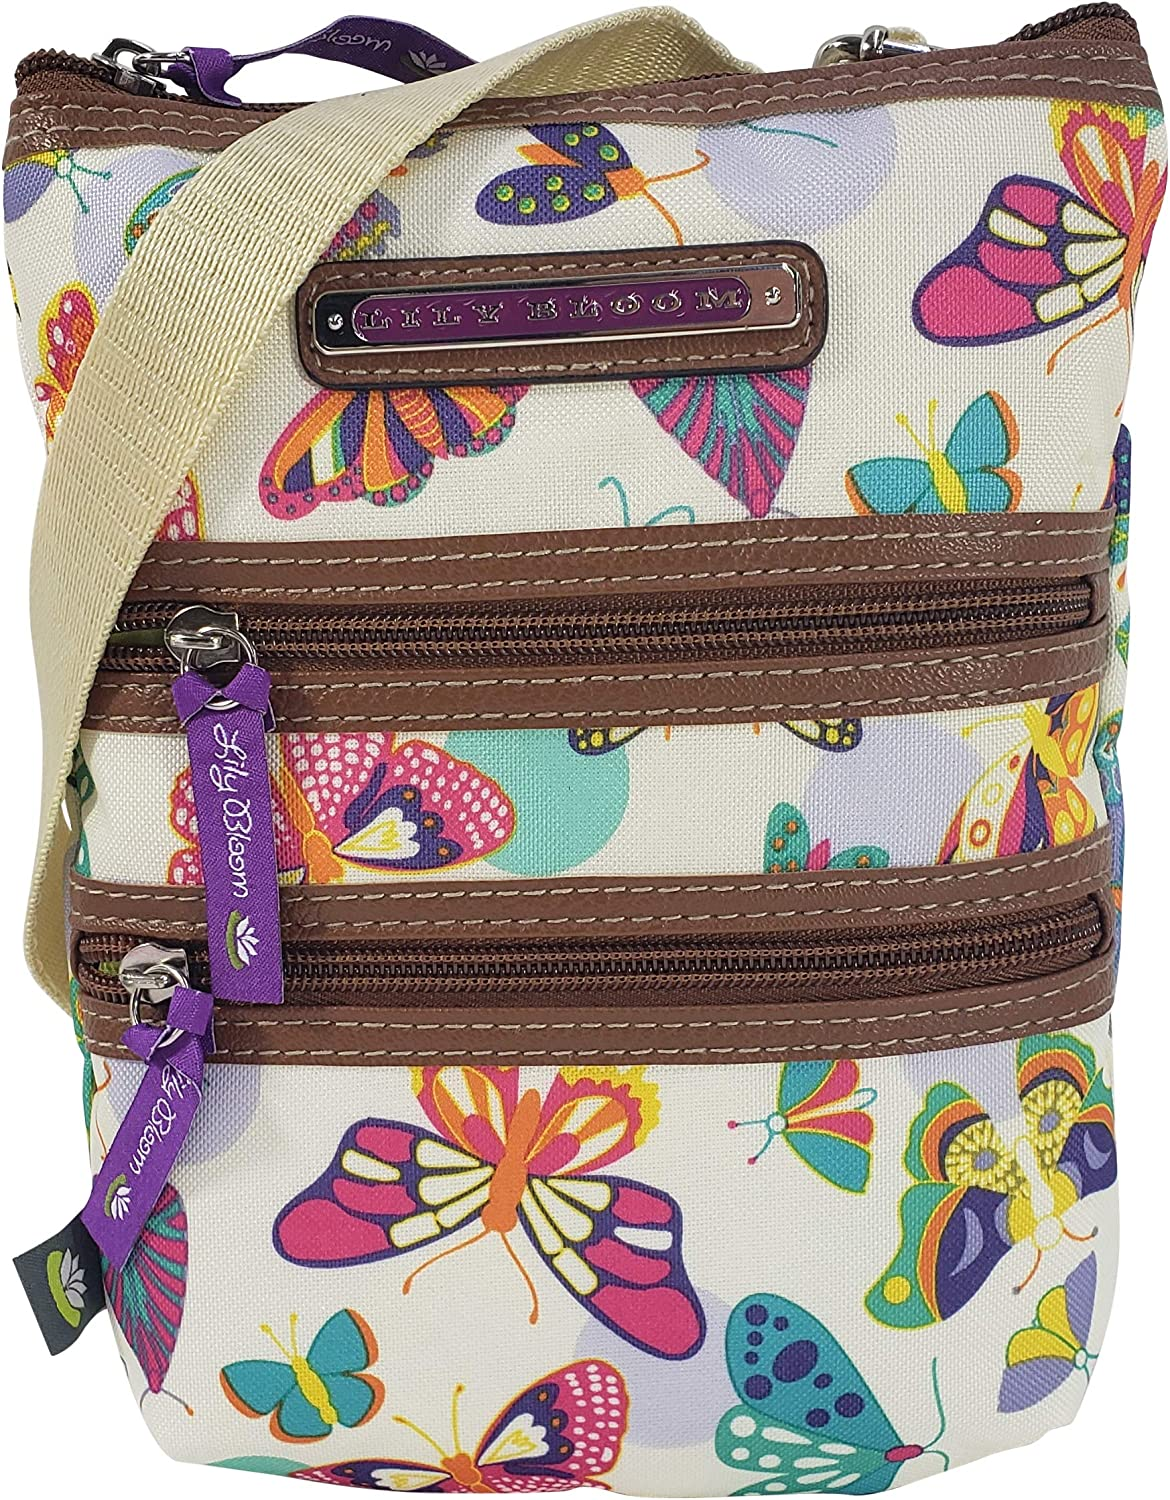 Lily Bloom Multi Section Eva Mini Crossbody Bag